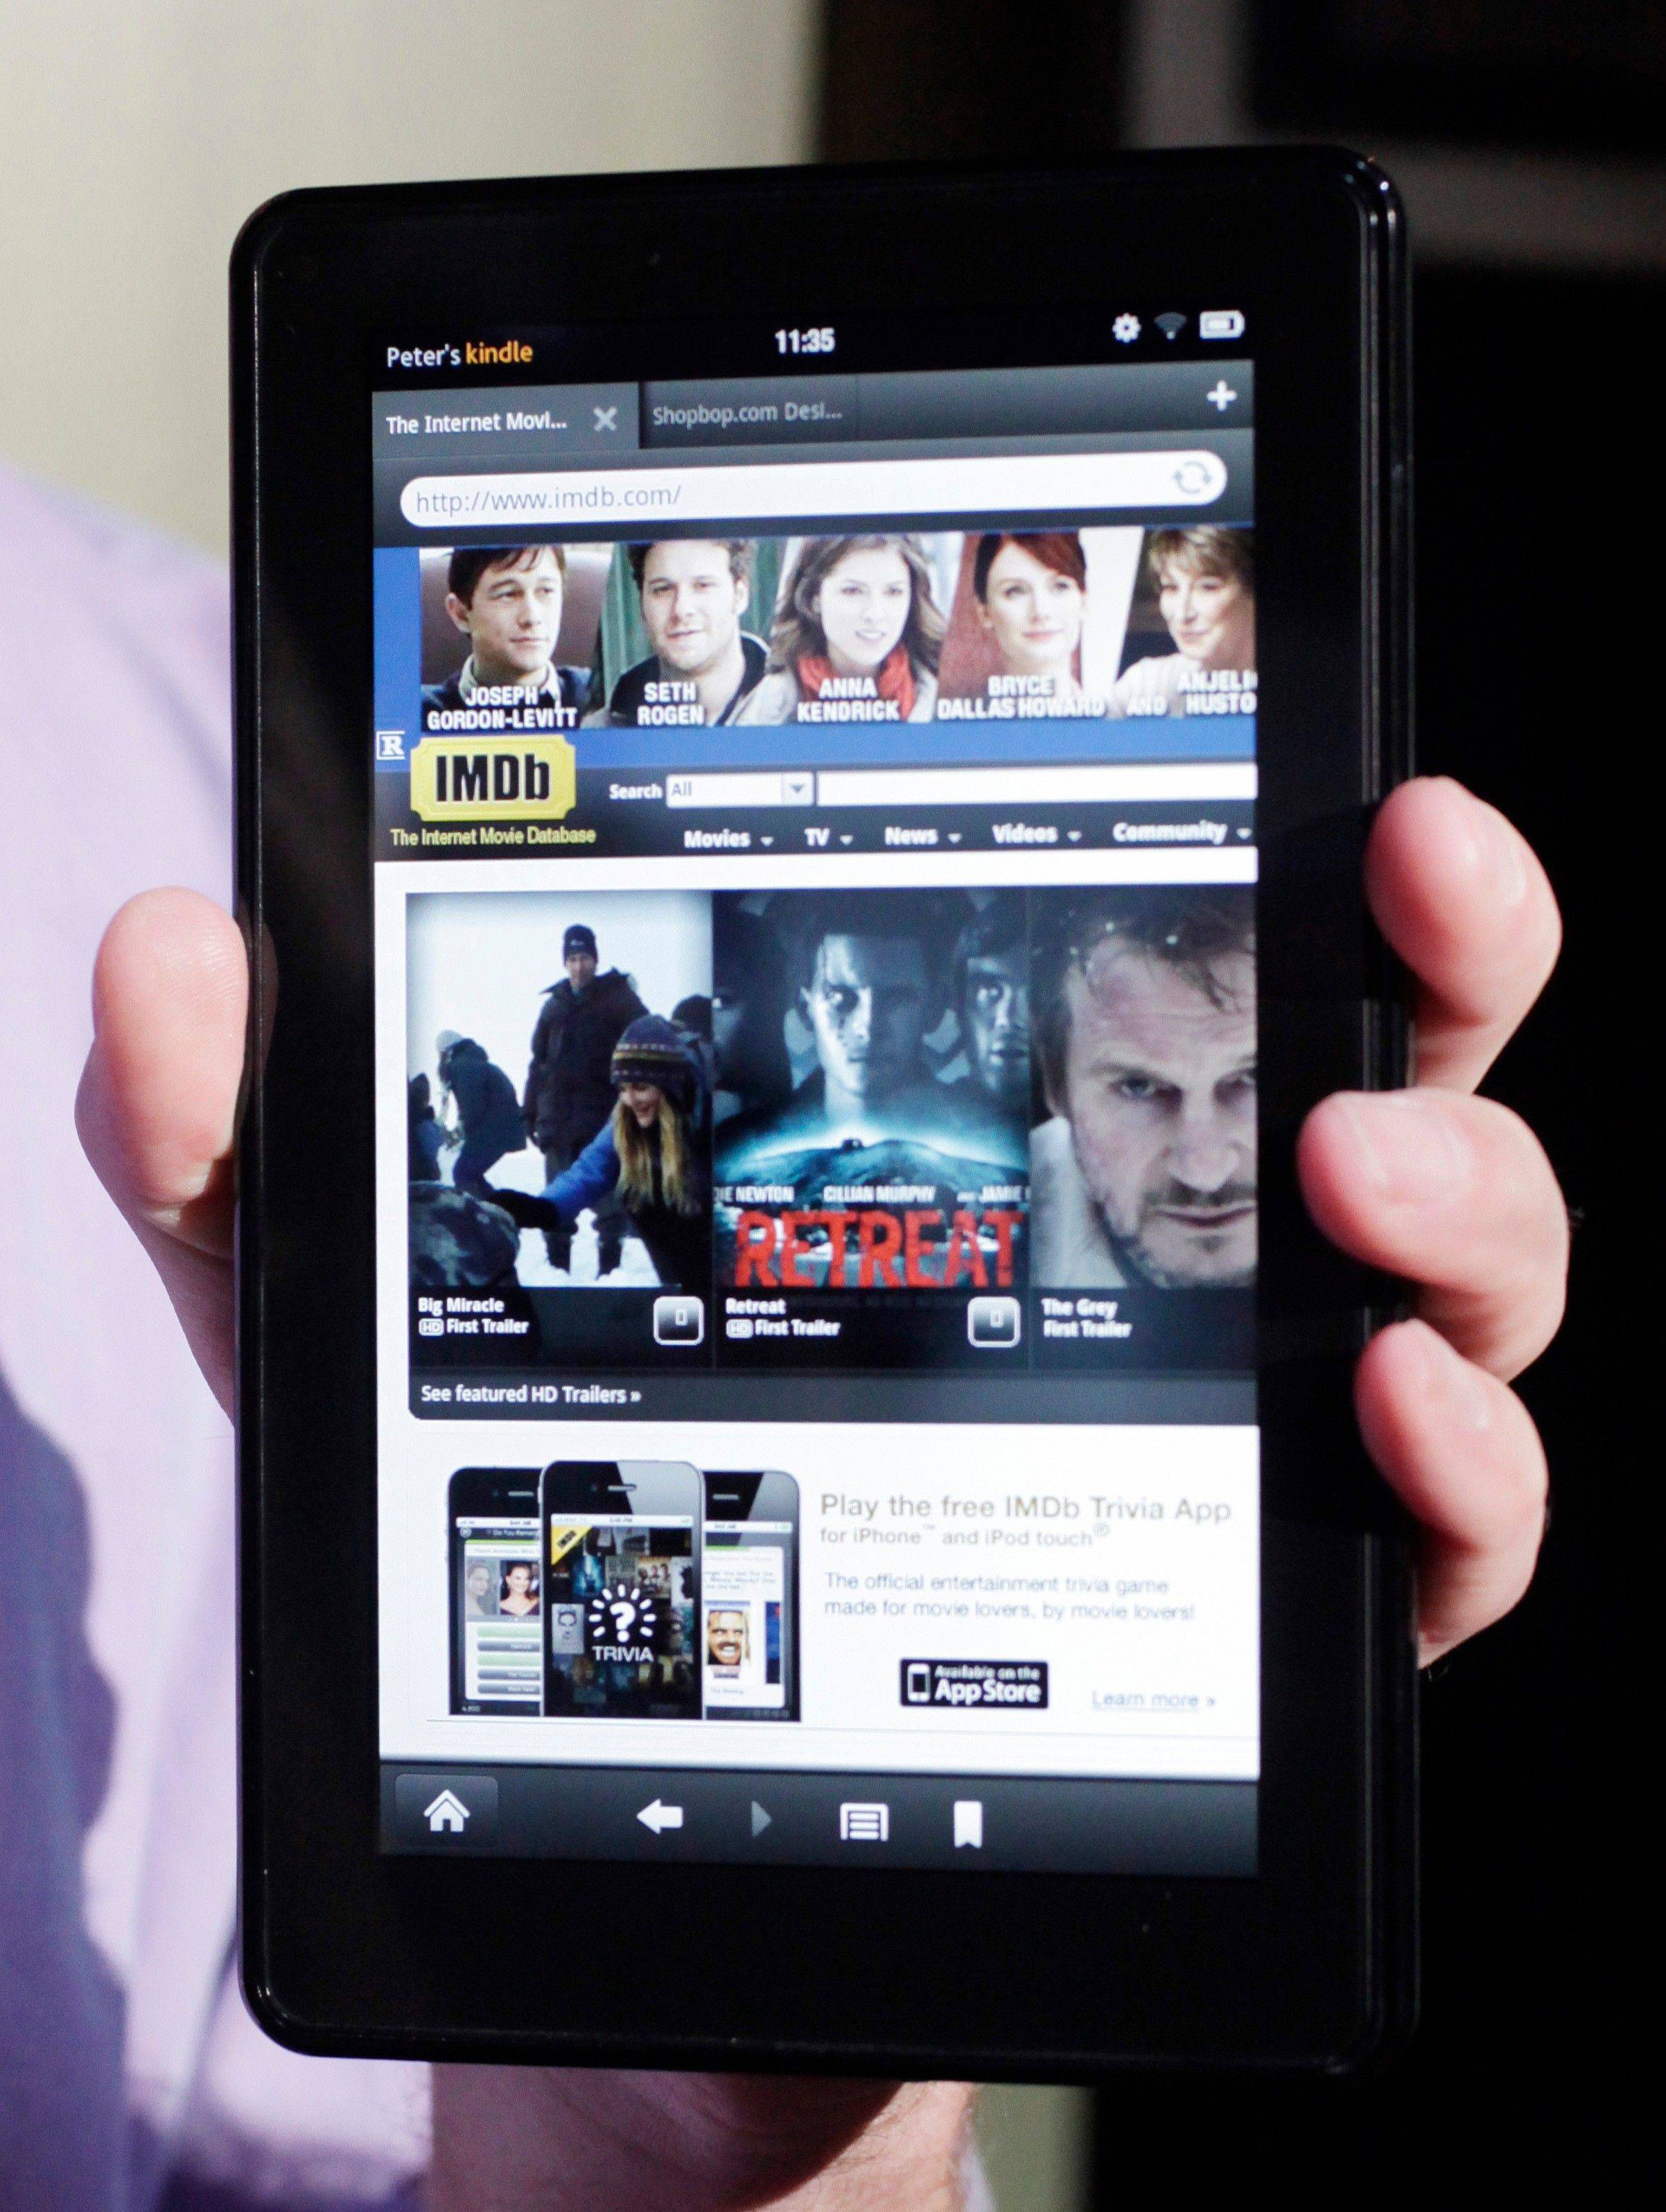 Since the launch of the first Kindle in 2007, this franchise has grown to include several e-readers and the Kindle Fire tablet.